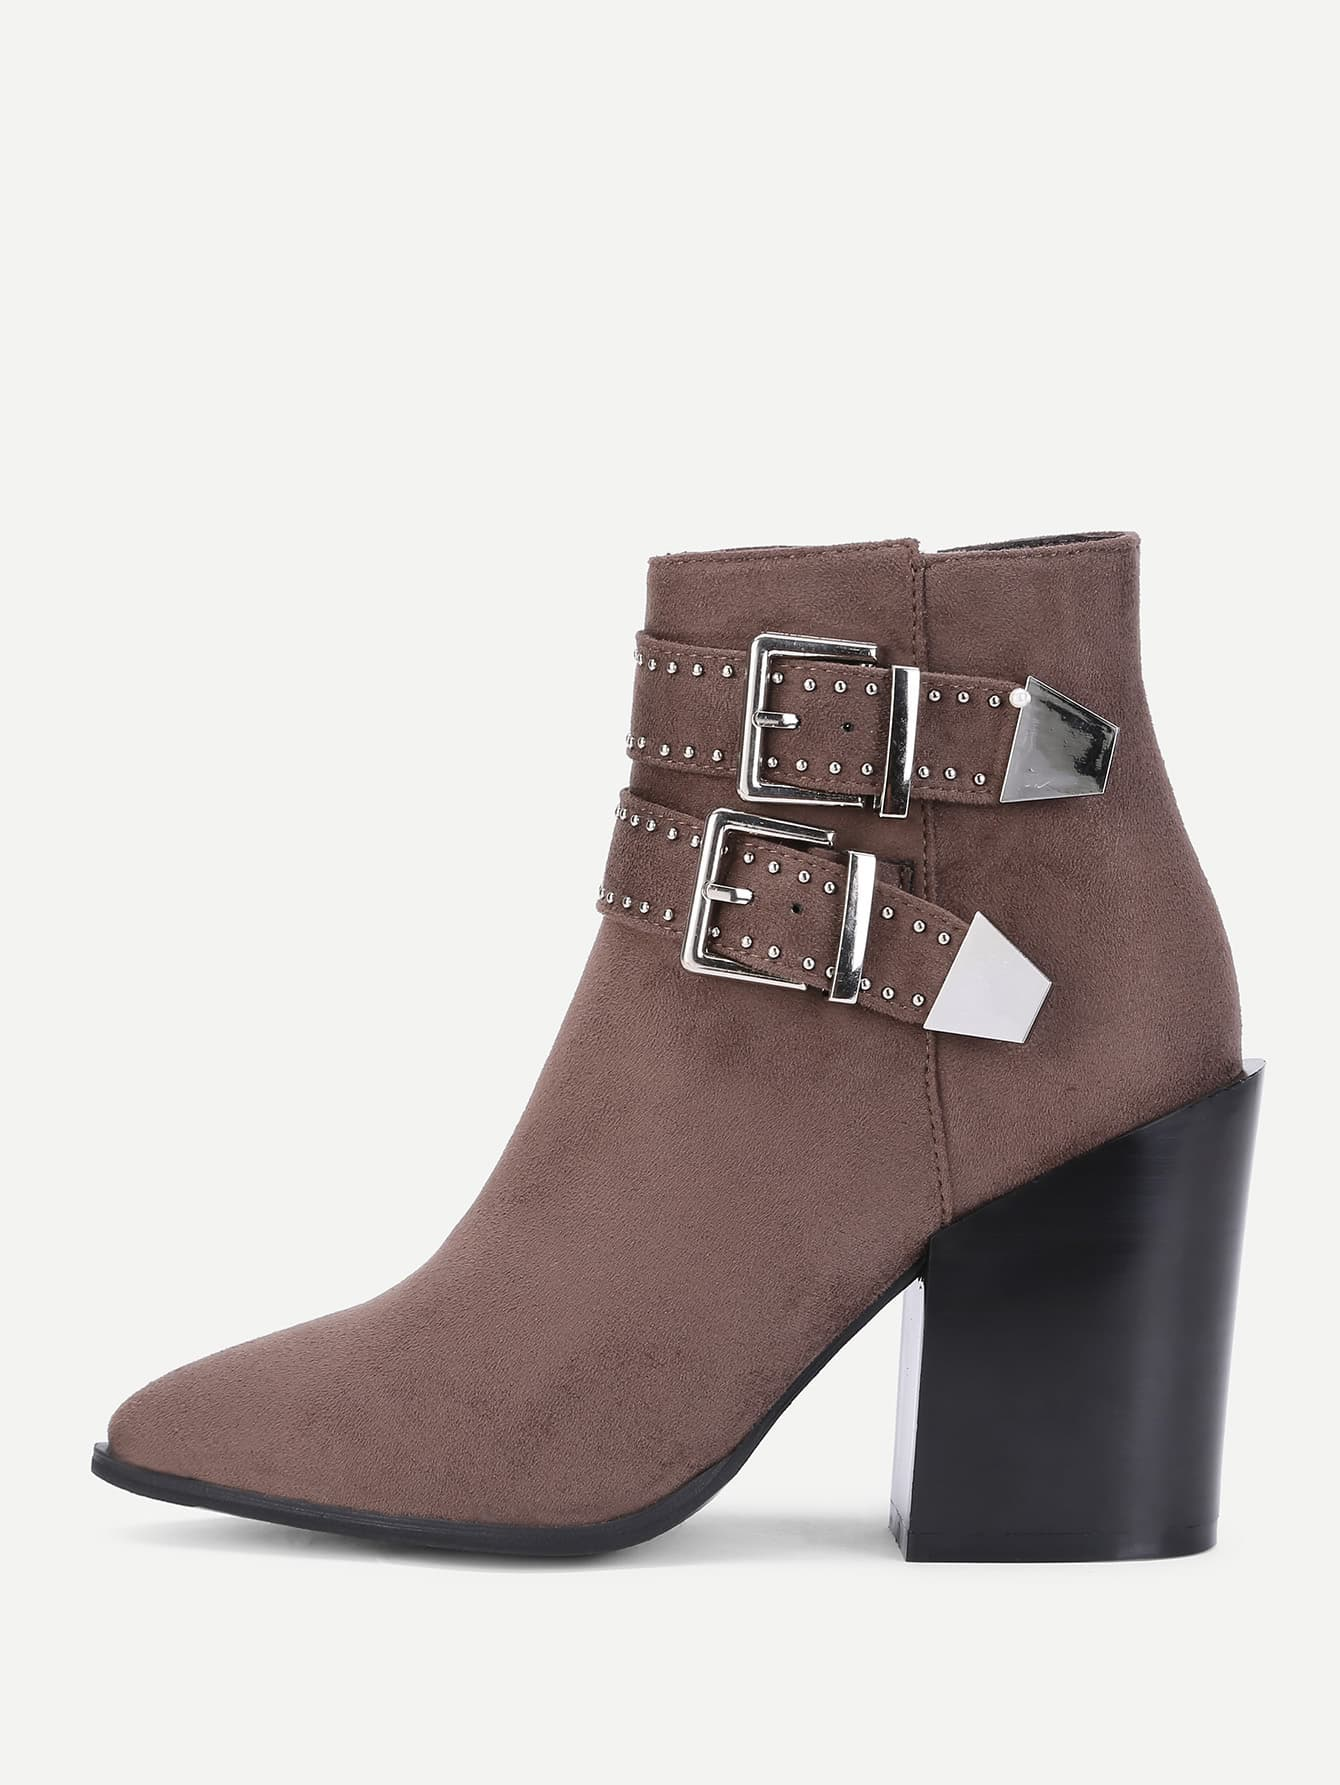 Double Buckle Pointed Toe Boots double buckle cross straps mid calf boots